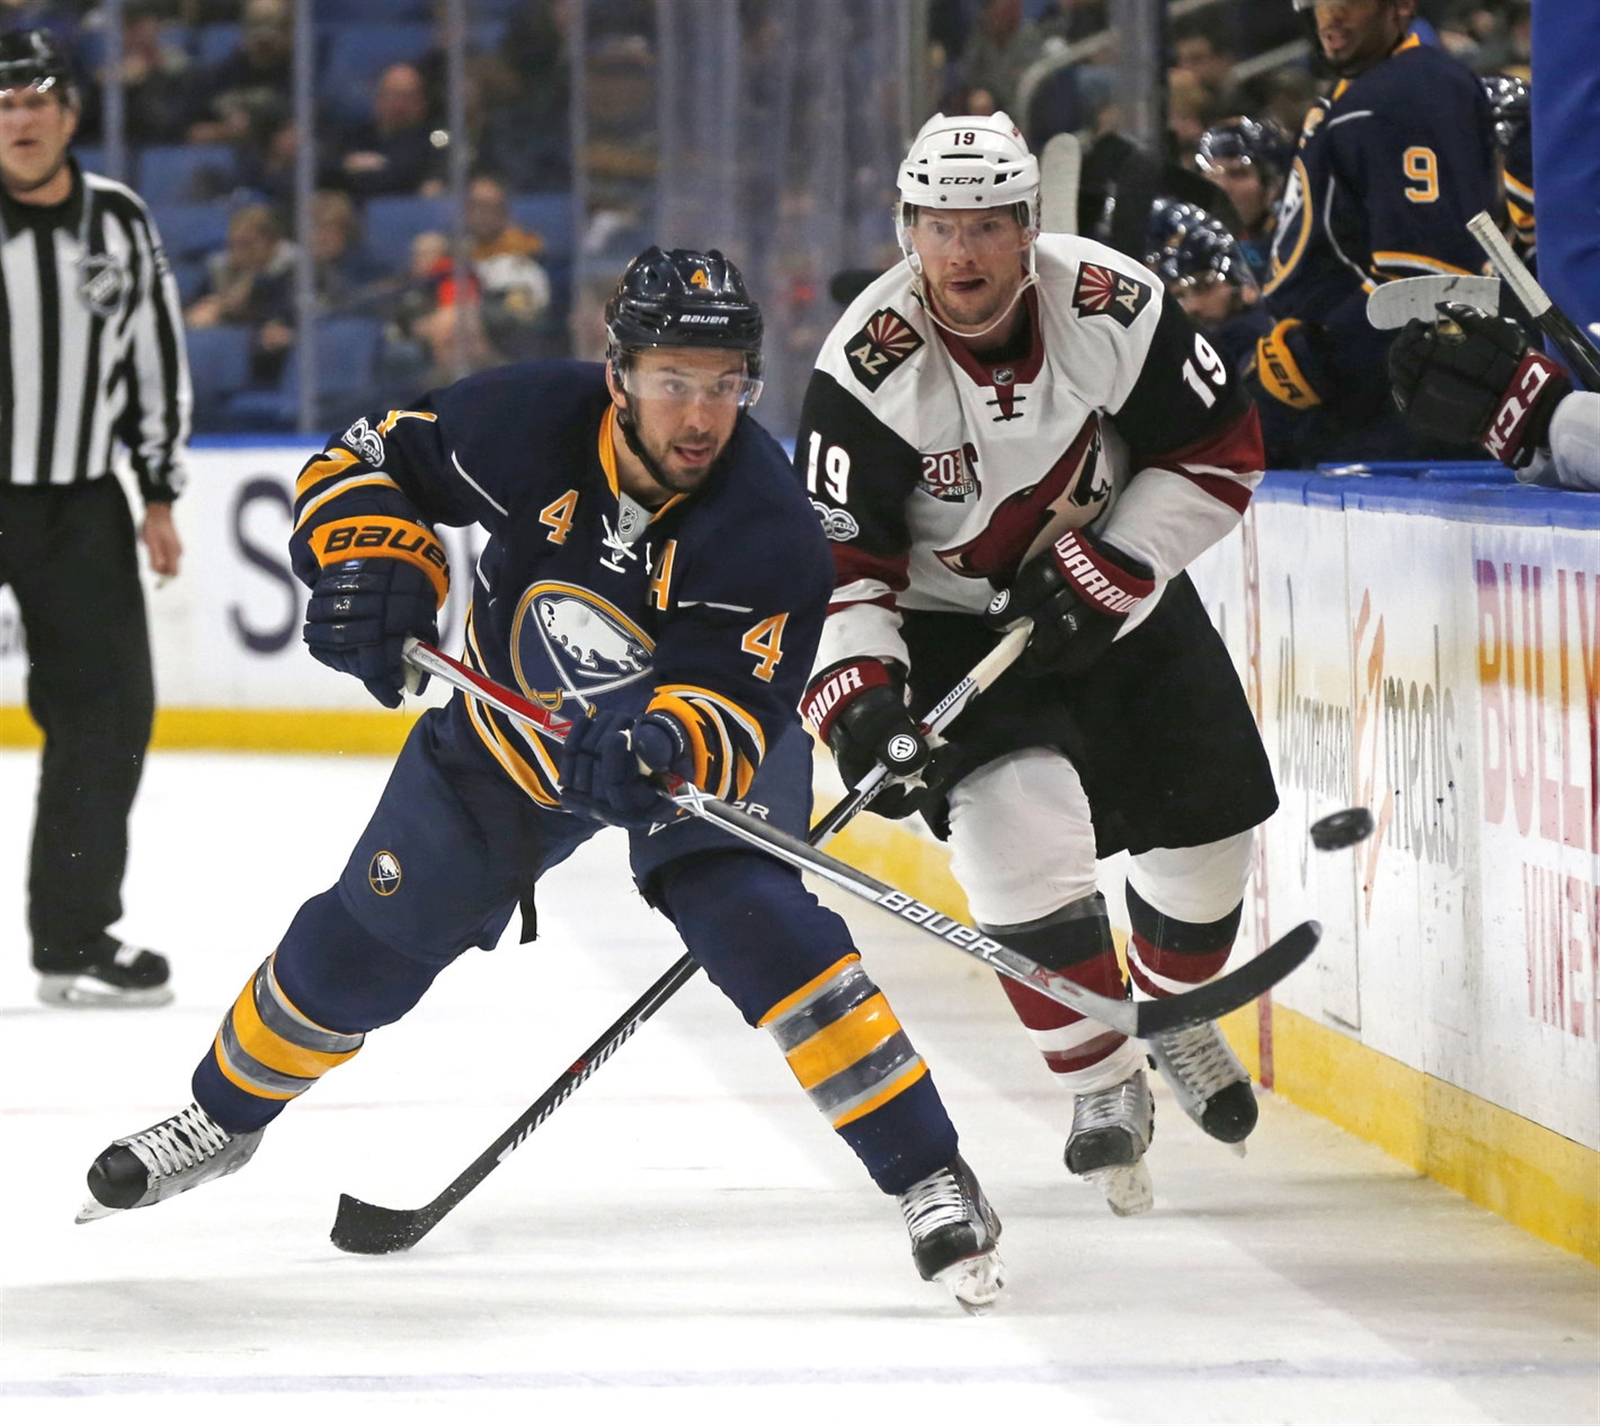 Josh Gorges says the Sabres just don't do enough to earn a win. (Robert Kirkham/Buffalo News)